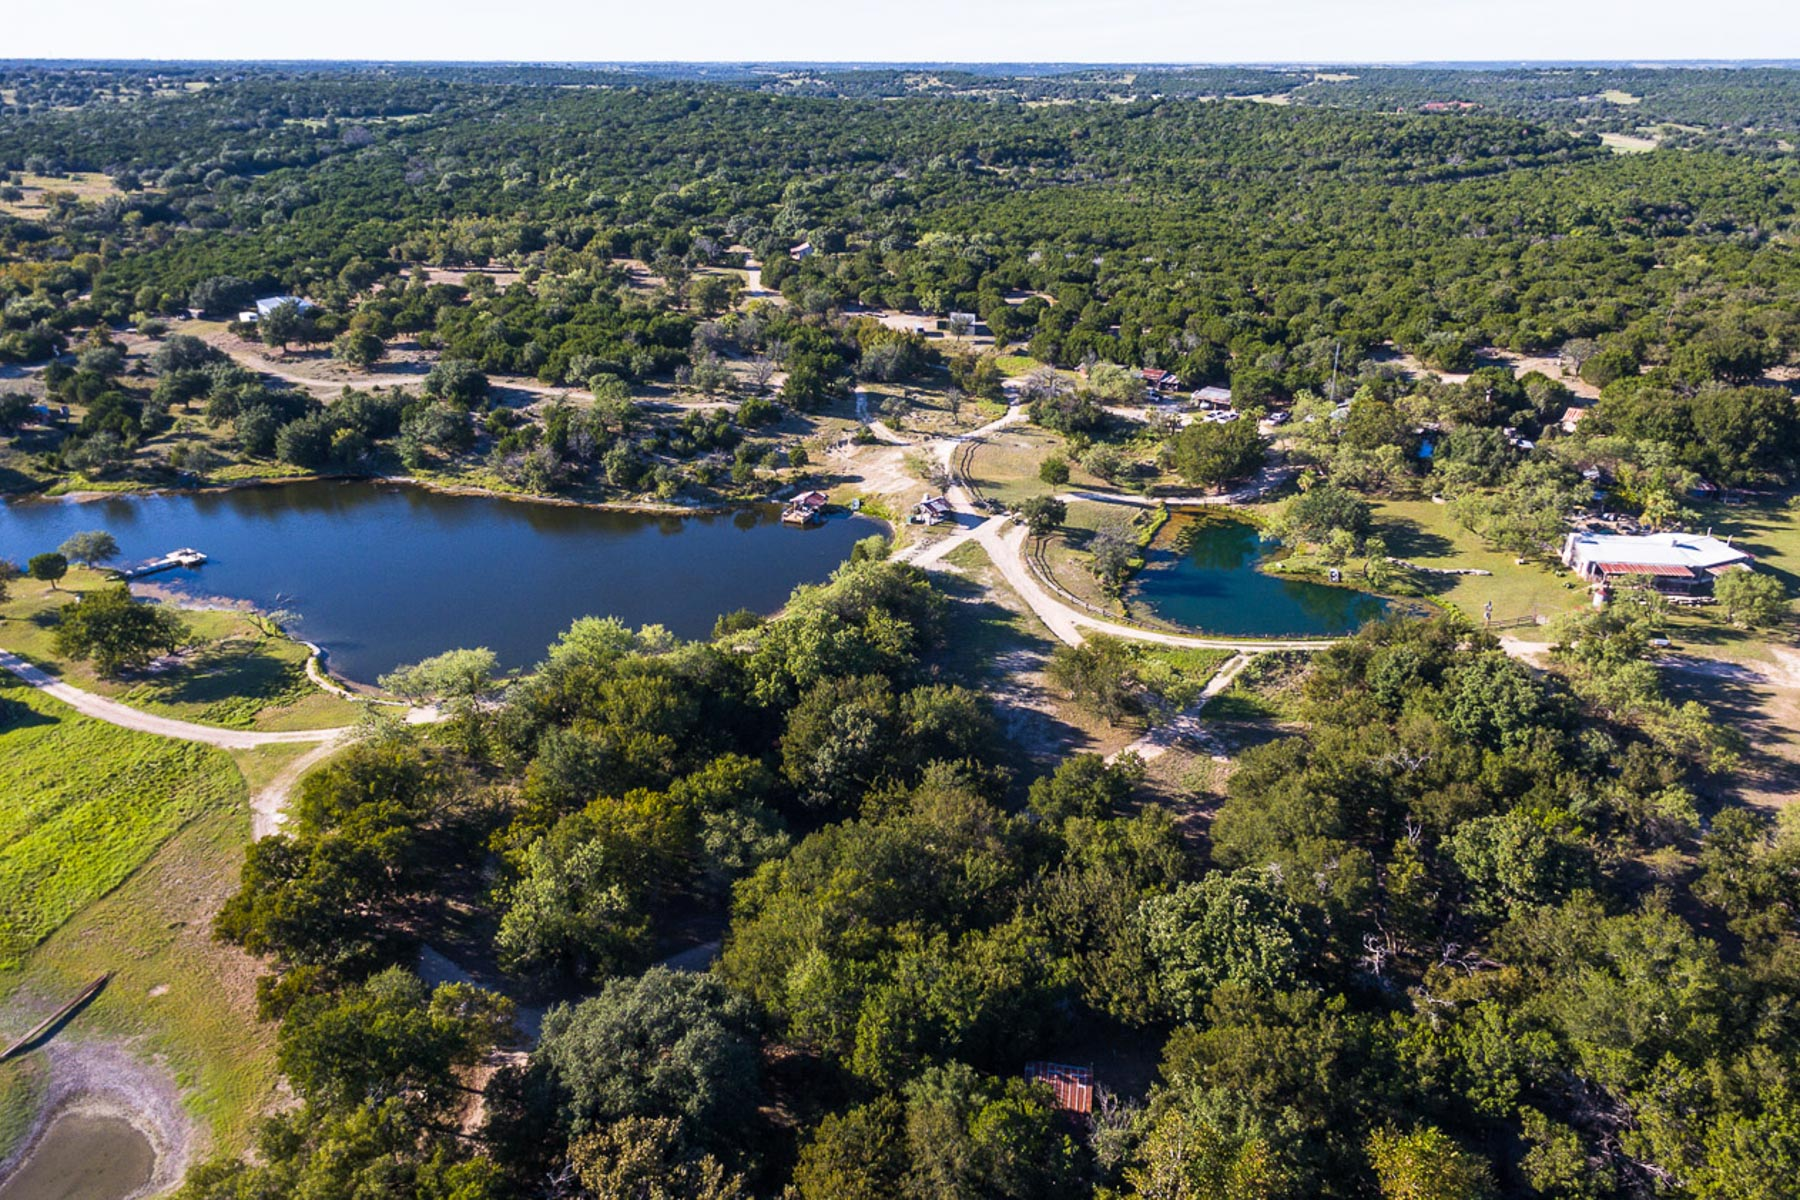 Land for Sale at Pony Creek Ranch 10620 CR 194 Bluff Dale, Texas 76433 United States